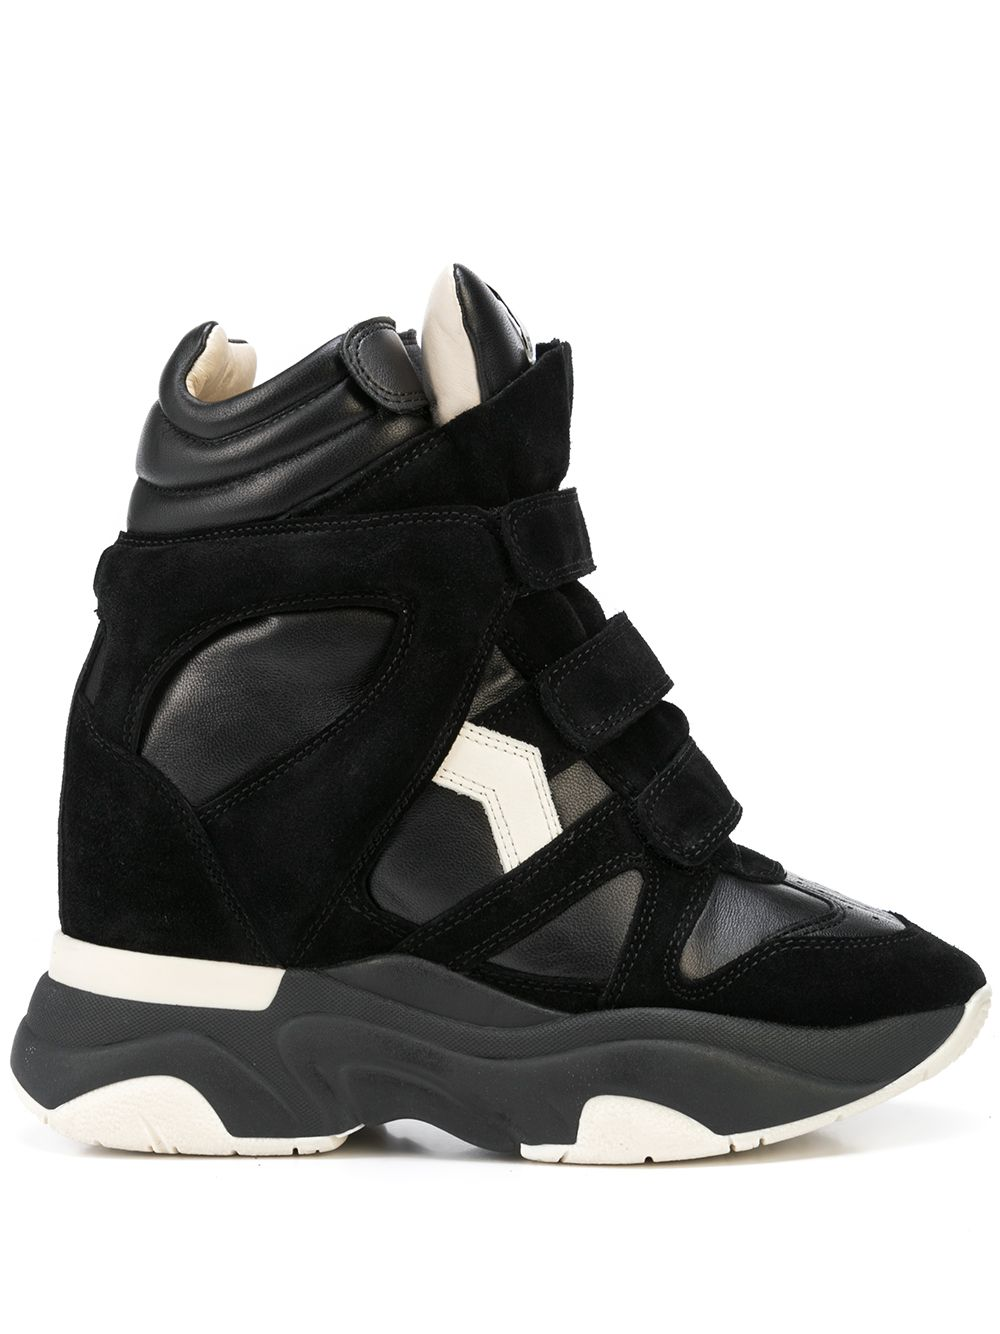 <p class='small-title'>ISABEL MARANT</p>Balskee High-Top Sneakers